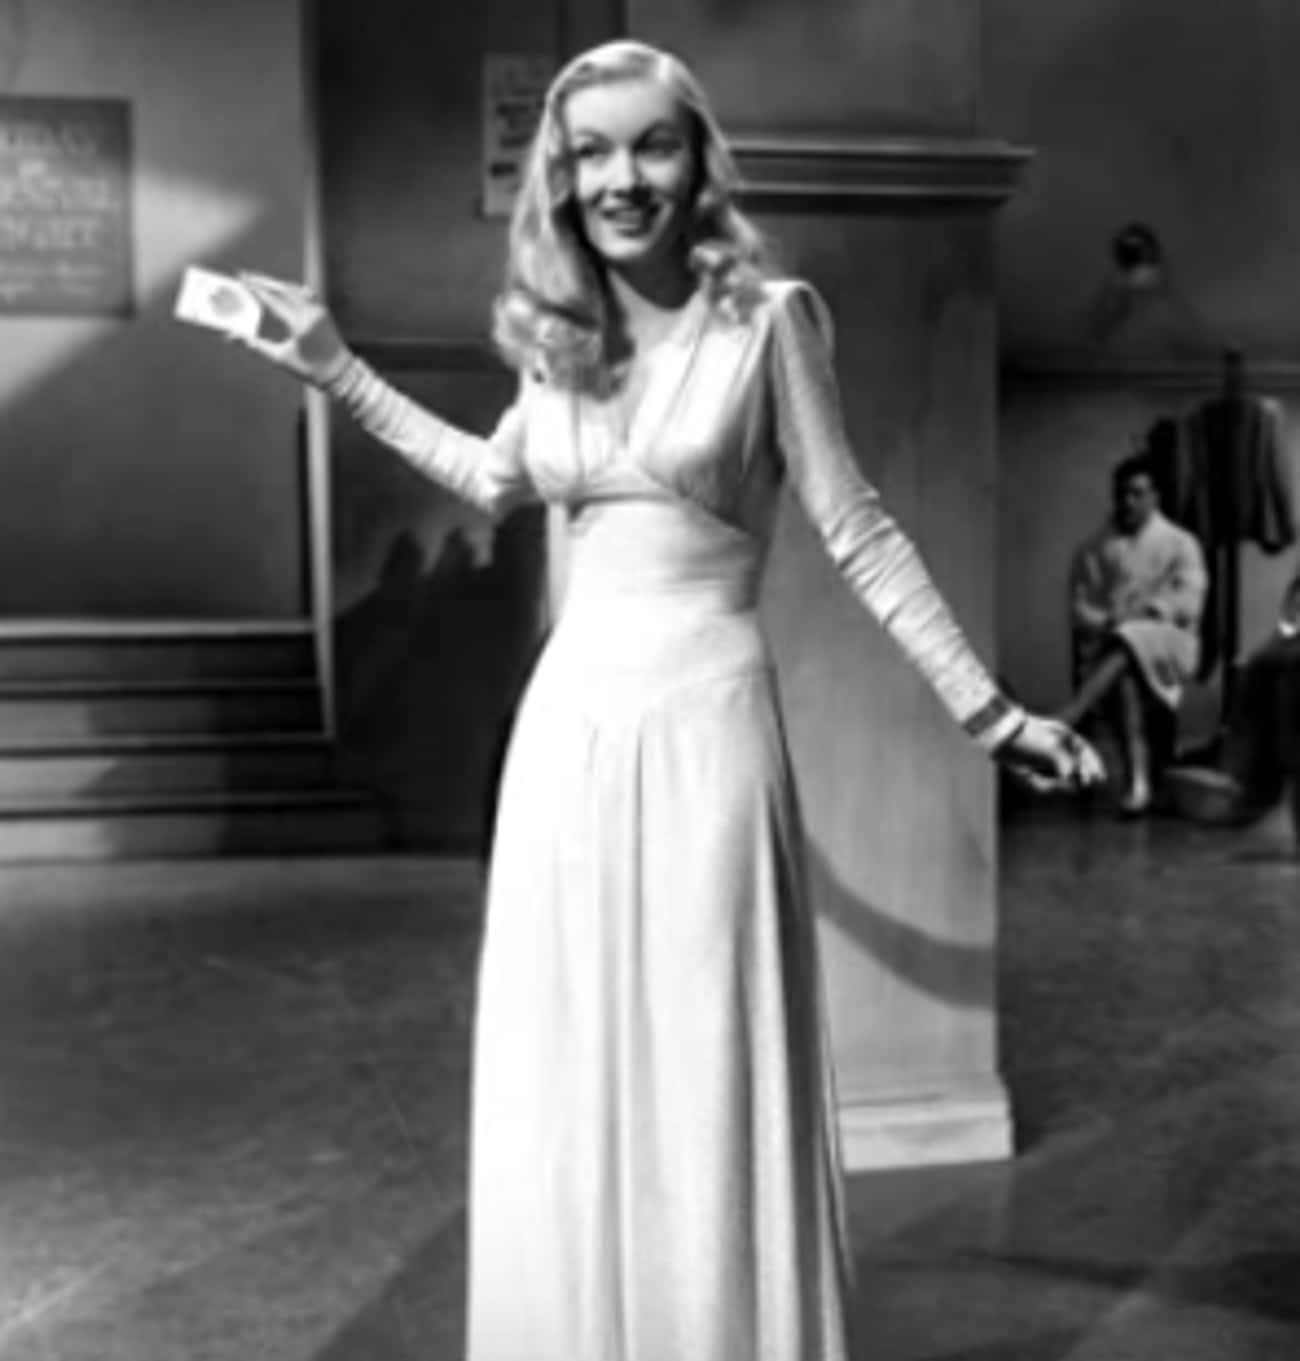 She Suffered From Schizophreni is listed (or ranked) 3 on the list Why Veronica Lake Was The Ultimate Femme-Fatale Of The '40s